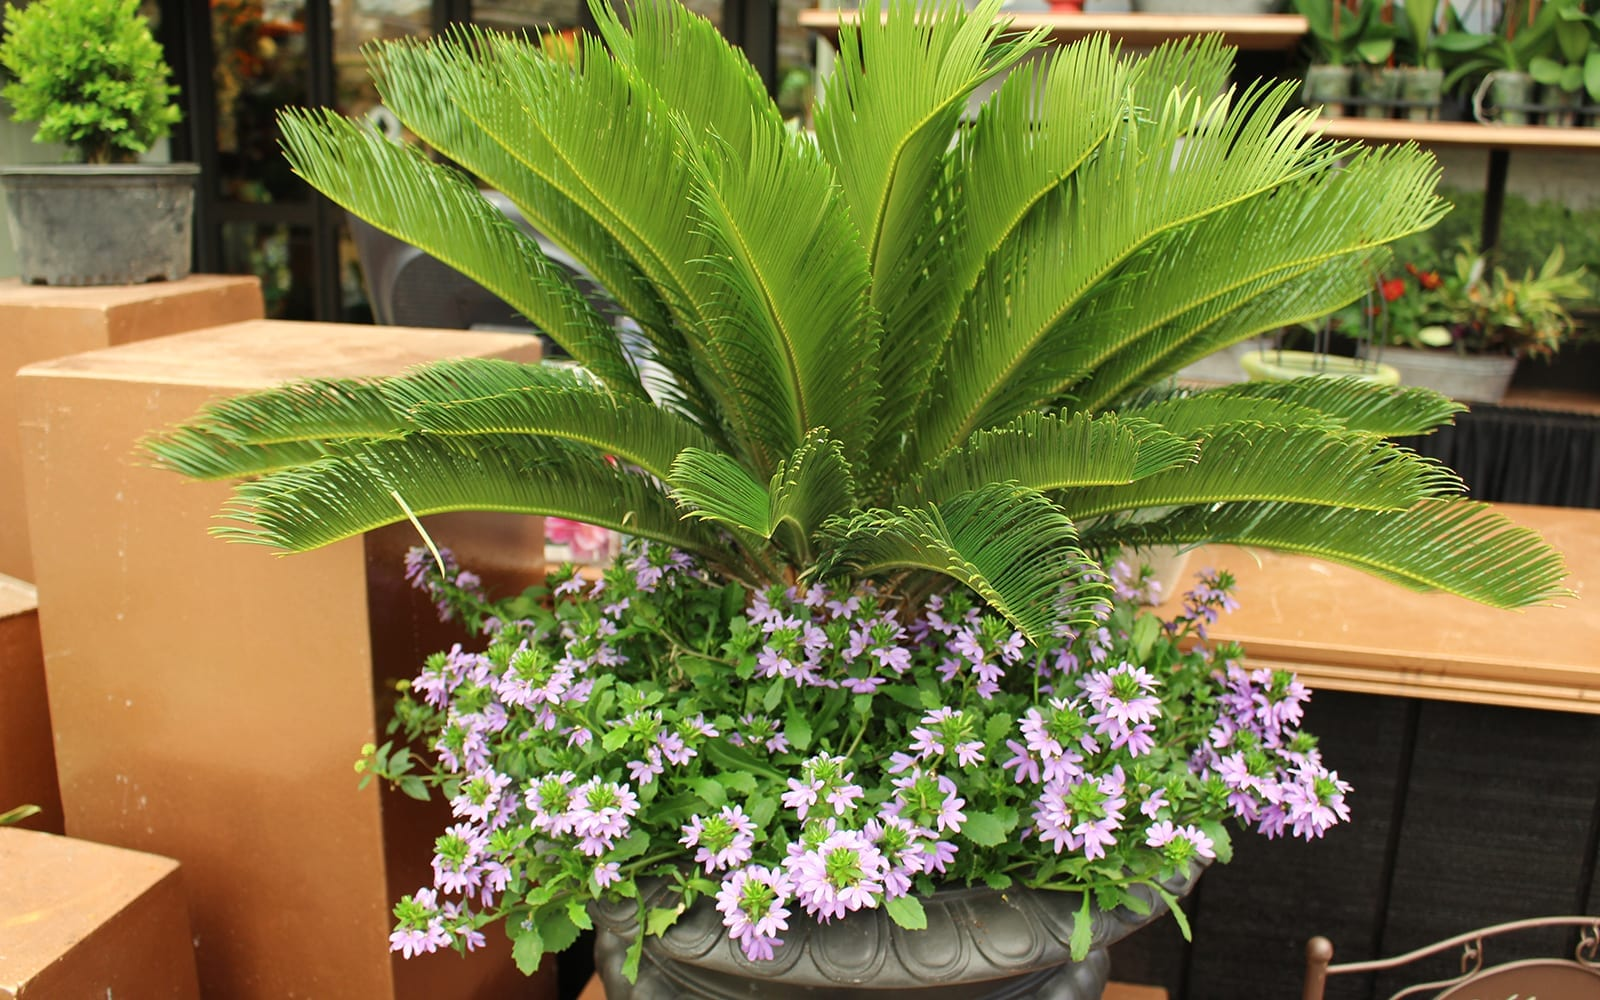 leafy plant with flowers in an urn